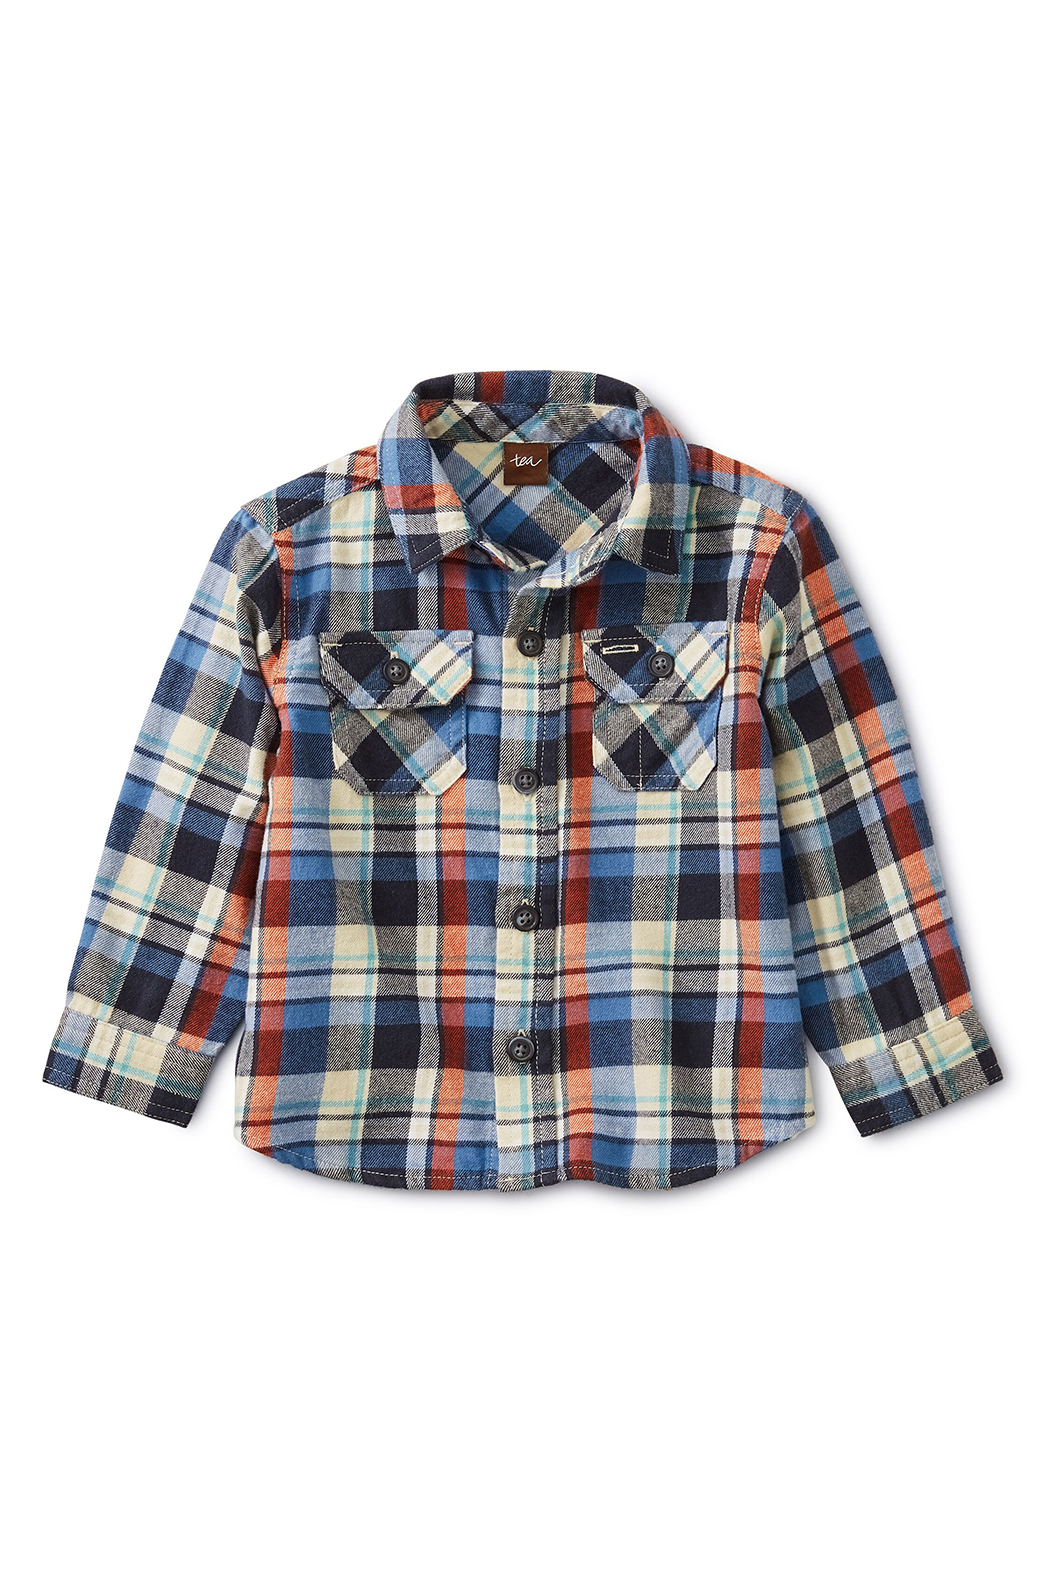 Tea Collection Flannel Plaid Baby Shirt - Front Full Image